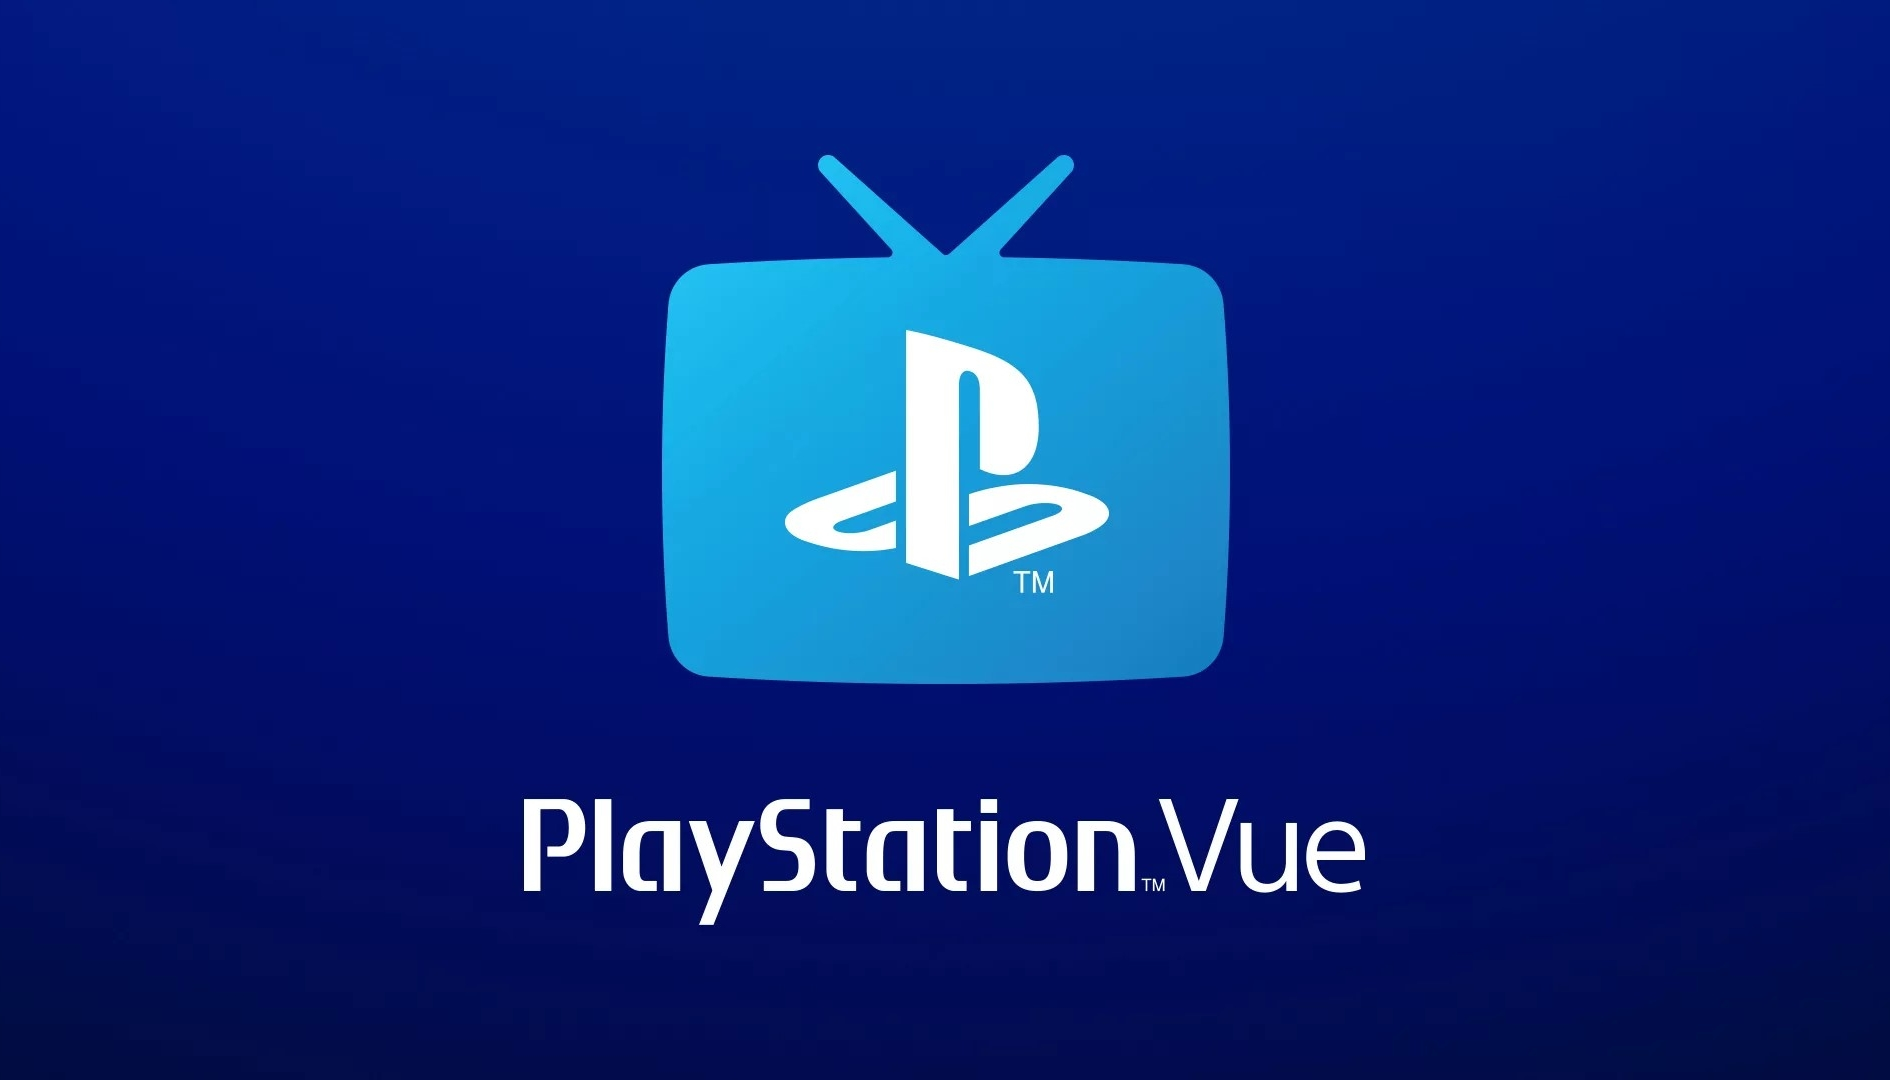 Sony chiude Playstation Vue